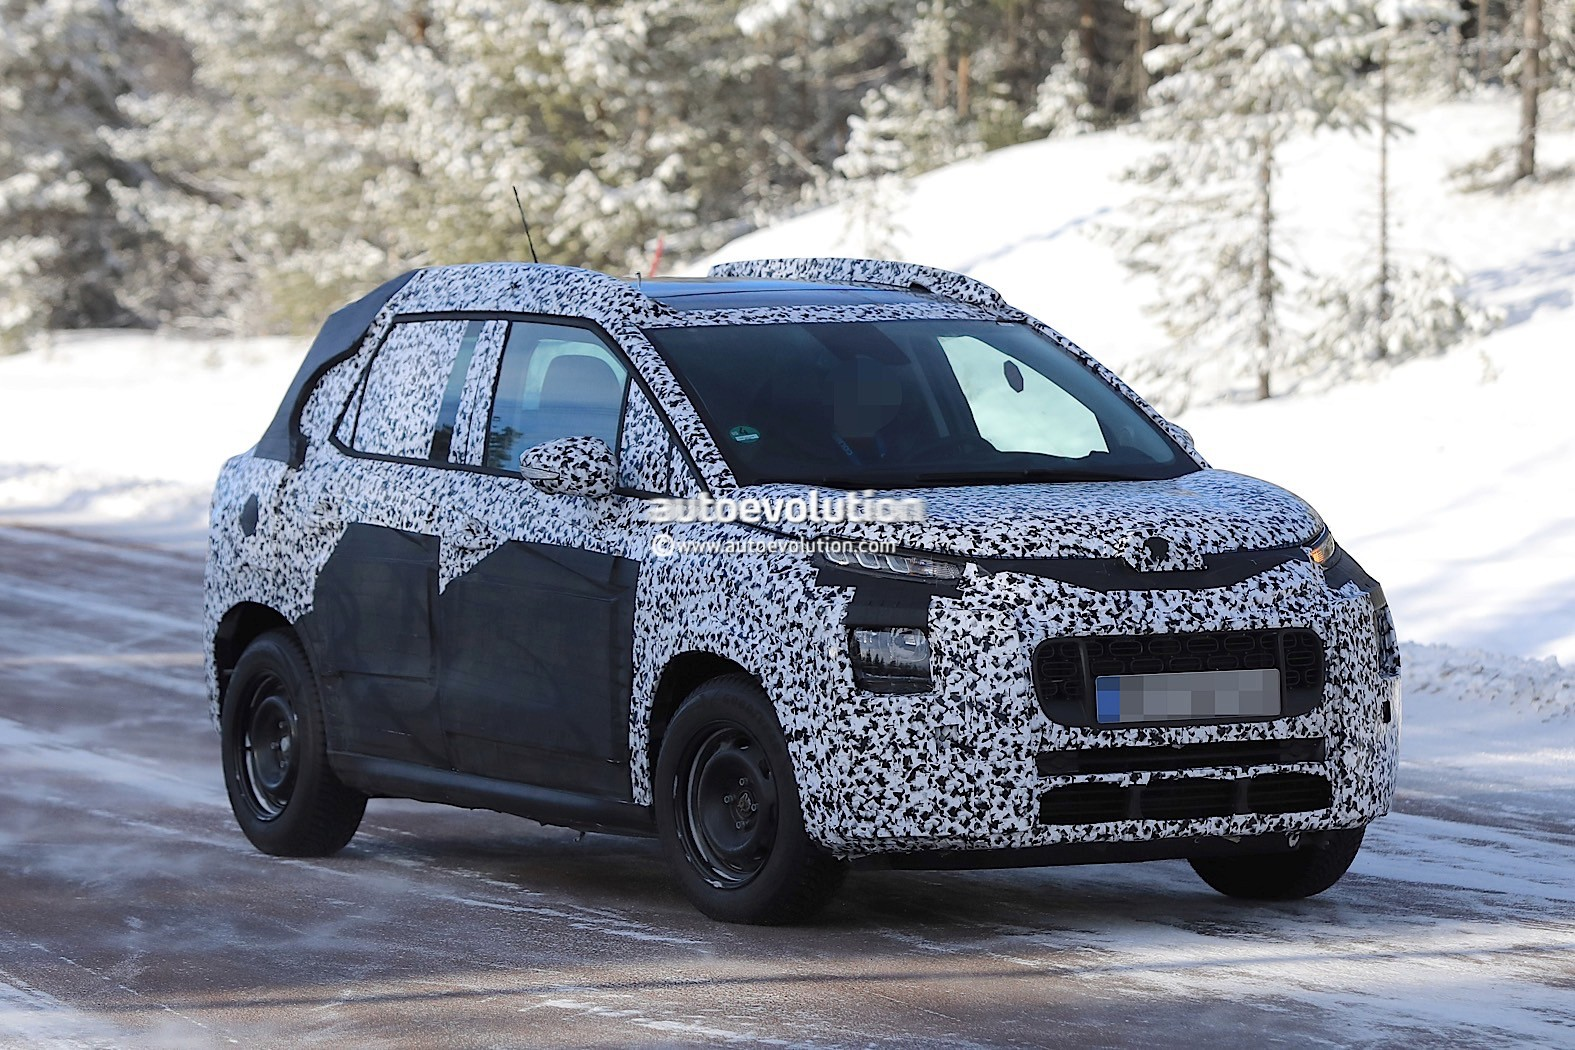 2018 Citroen C3 Picasso Makes A Snowy Appearance Before